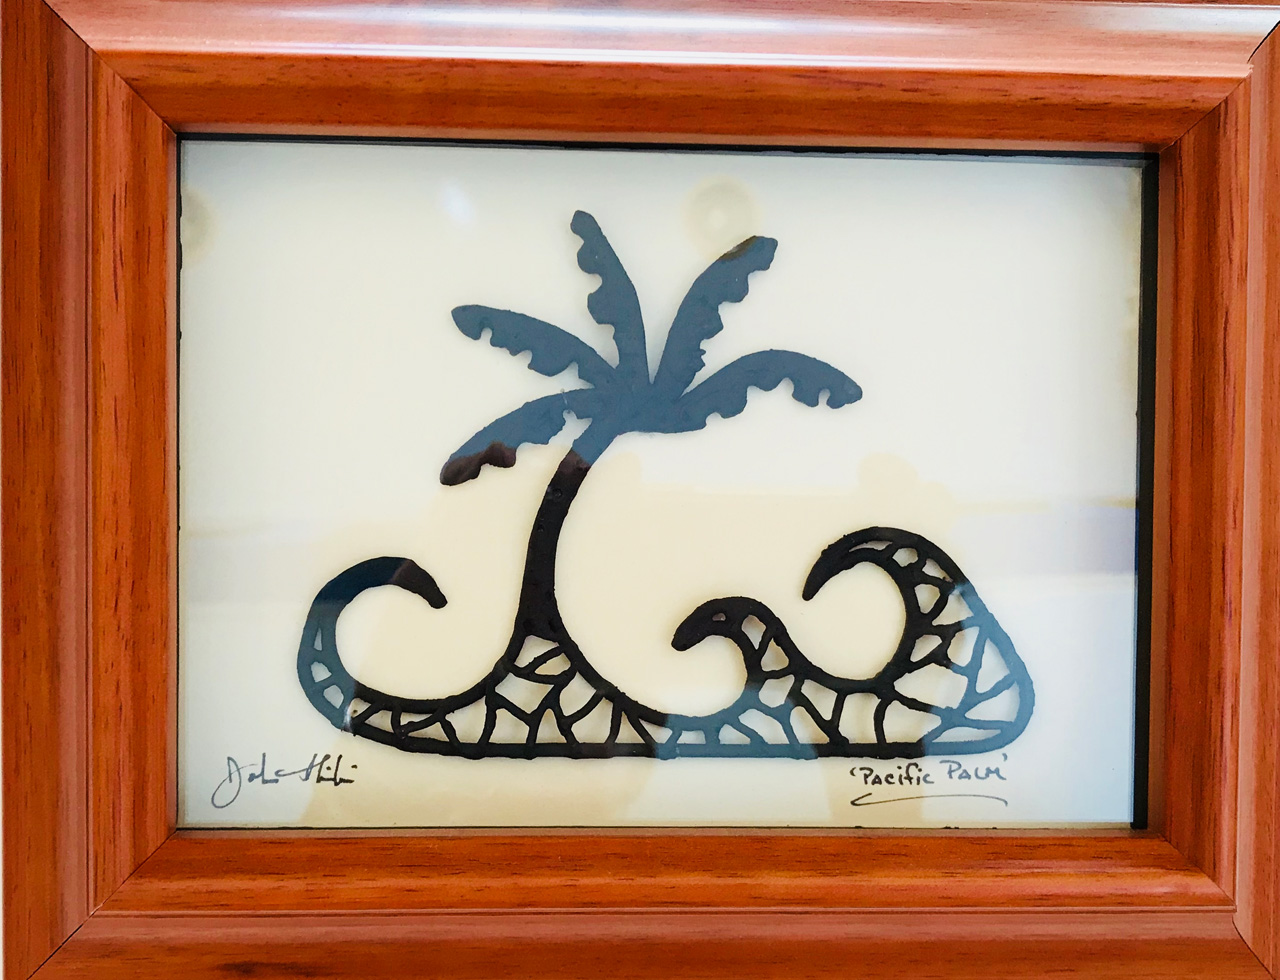 Framed metal sculpture titled Ocean Palm by John Ilnicki